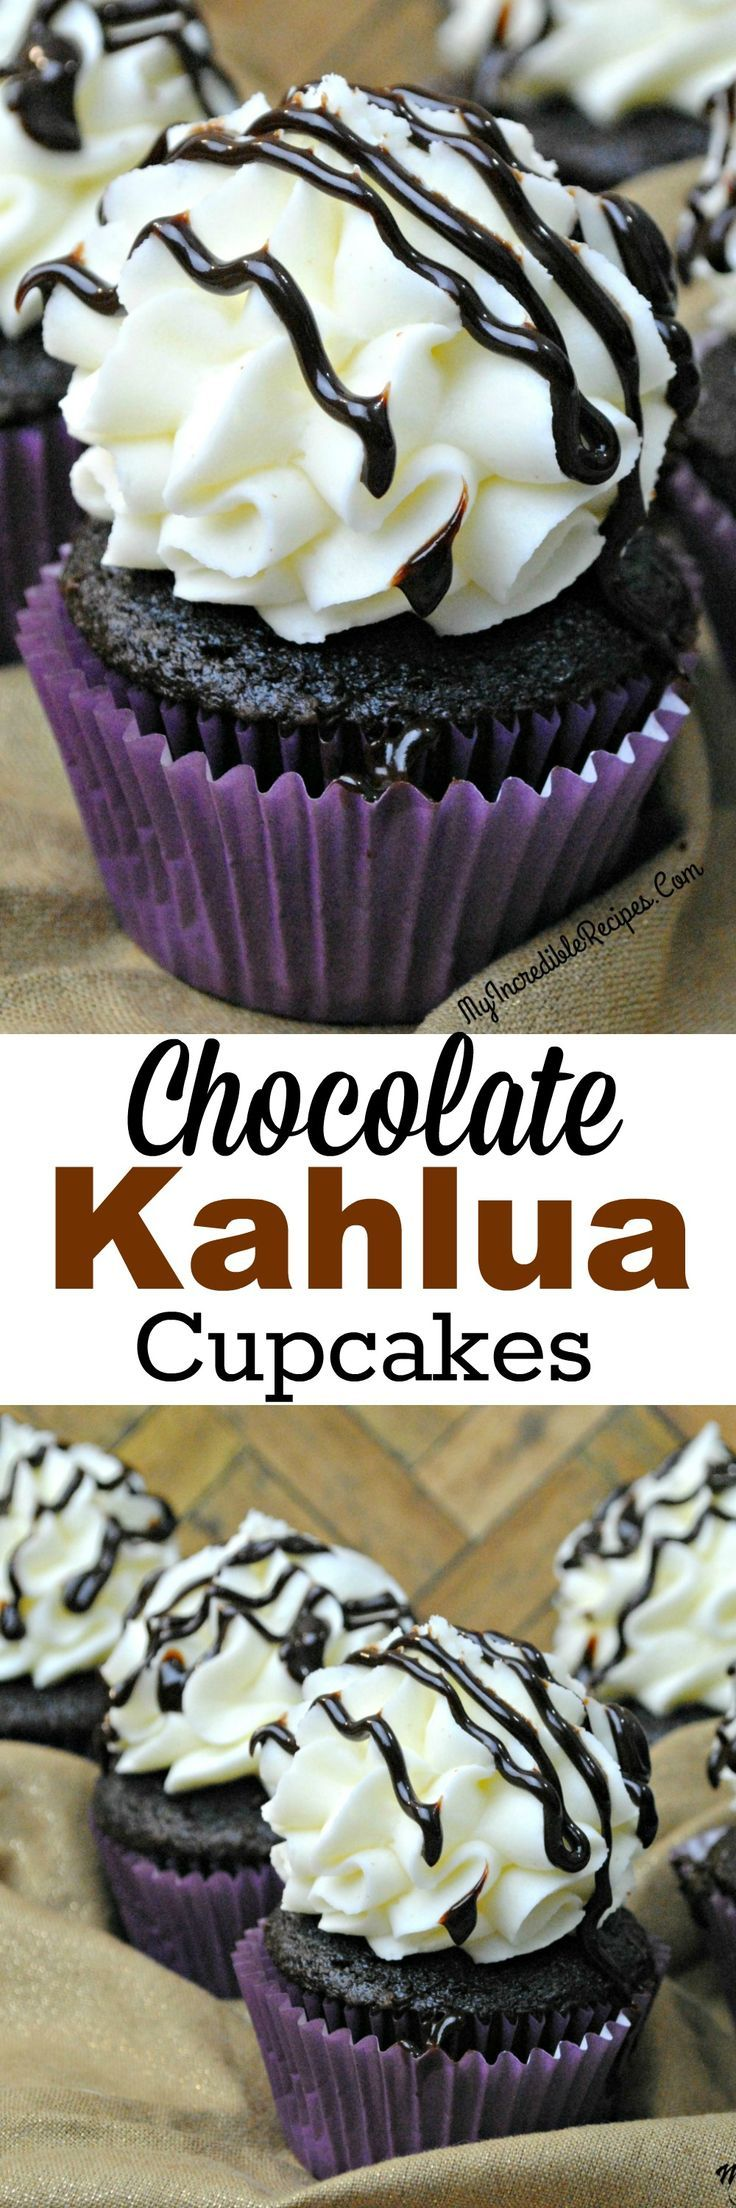 Chocolate Kahlua Cupcakes | My Incredible Recipes